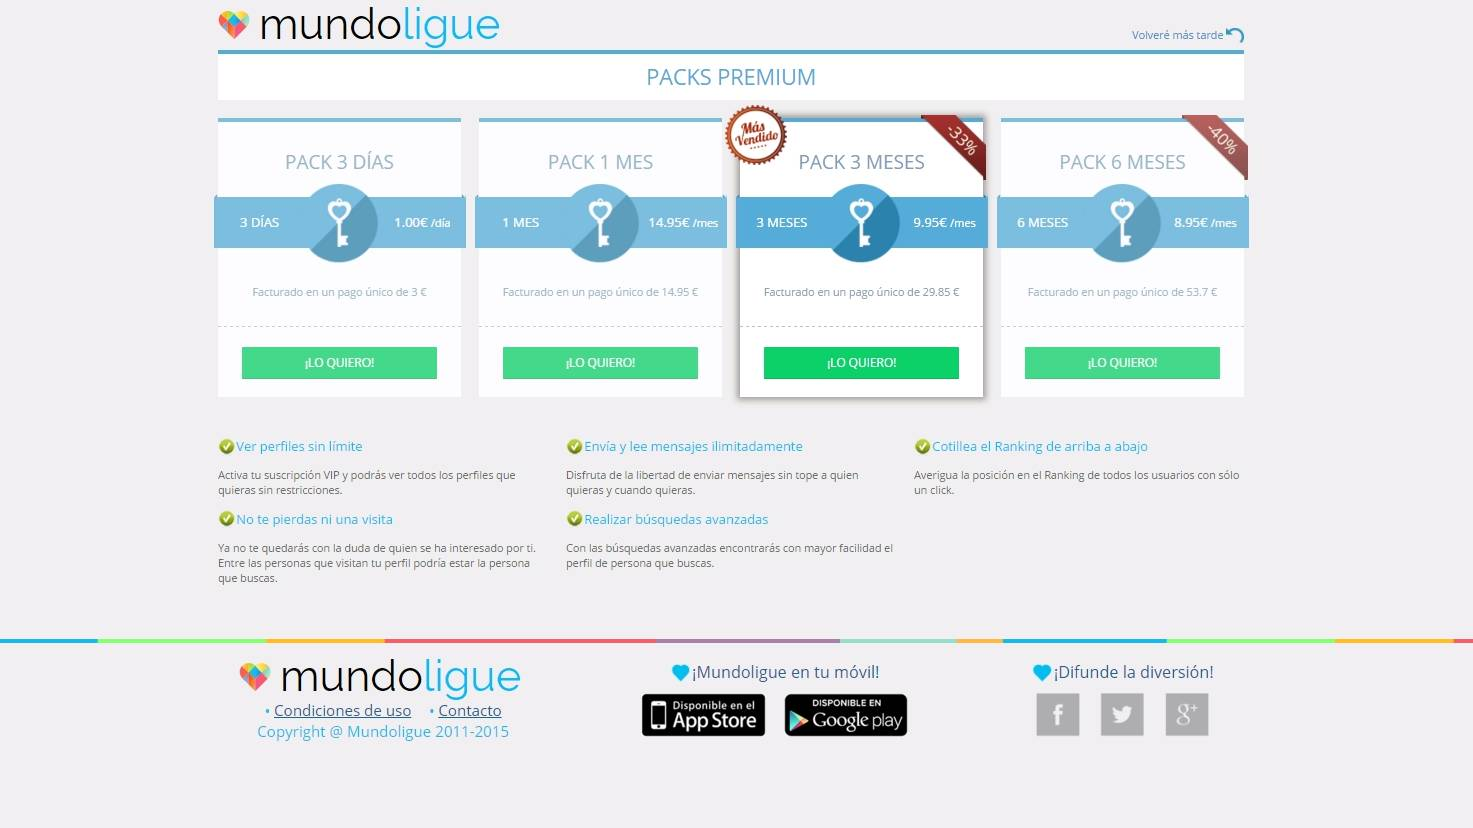 Mundoligue gratis